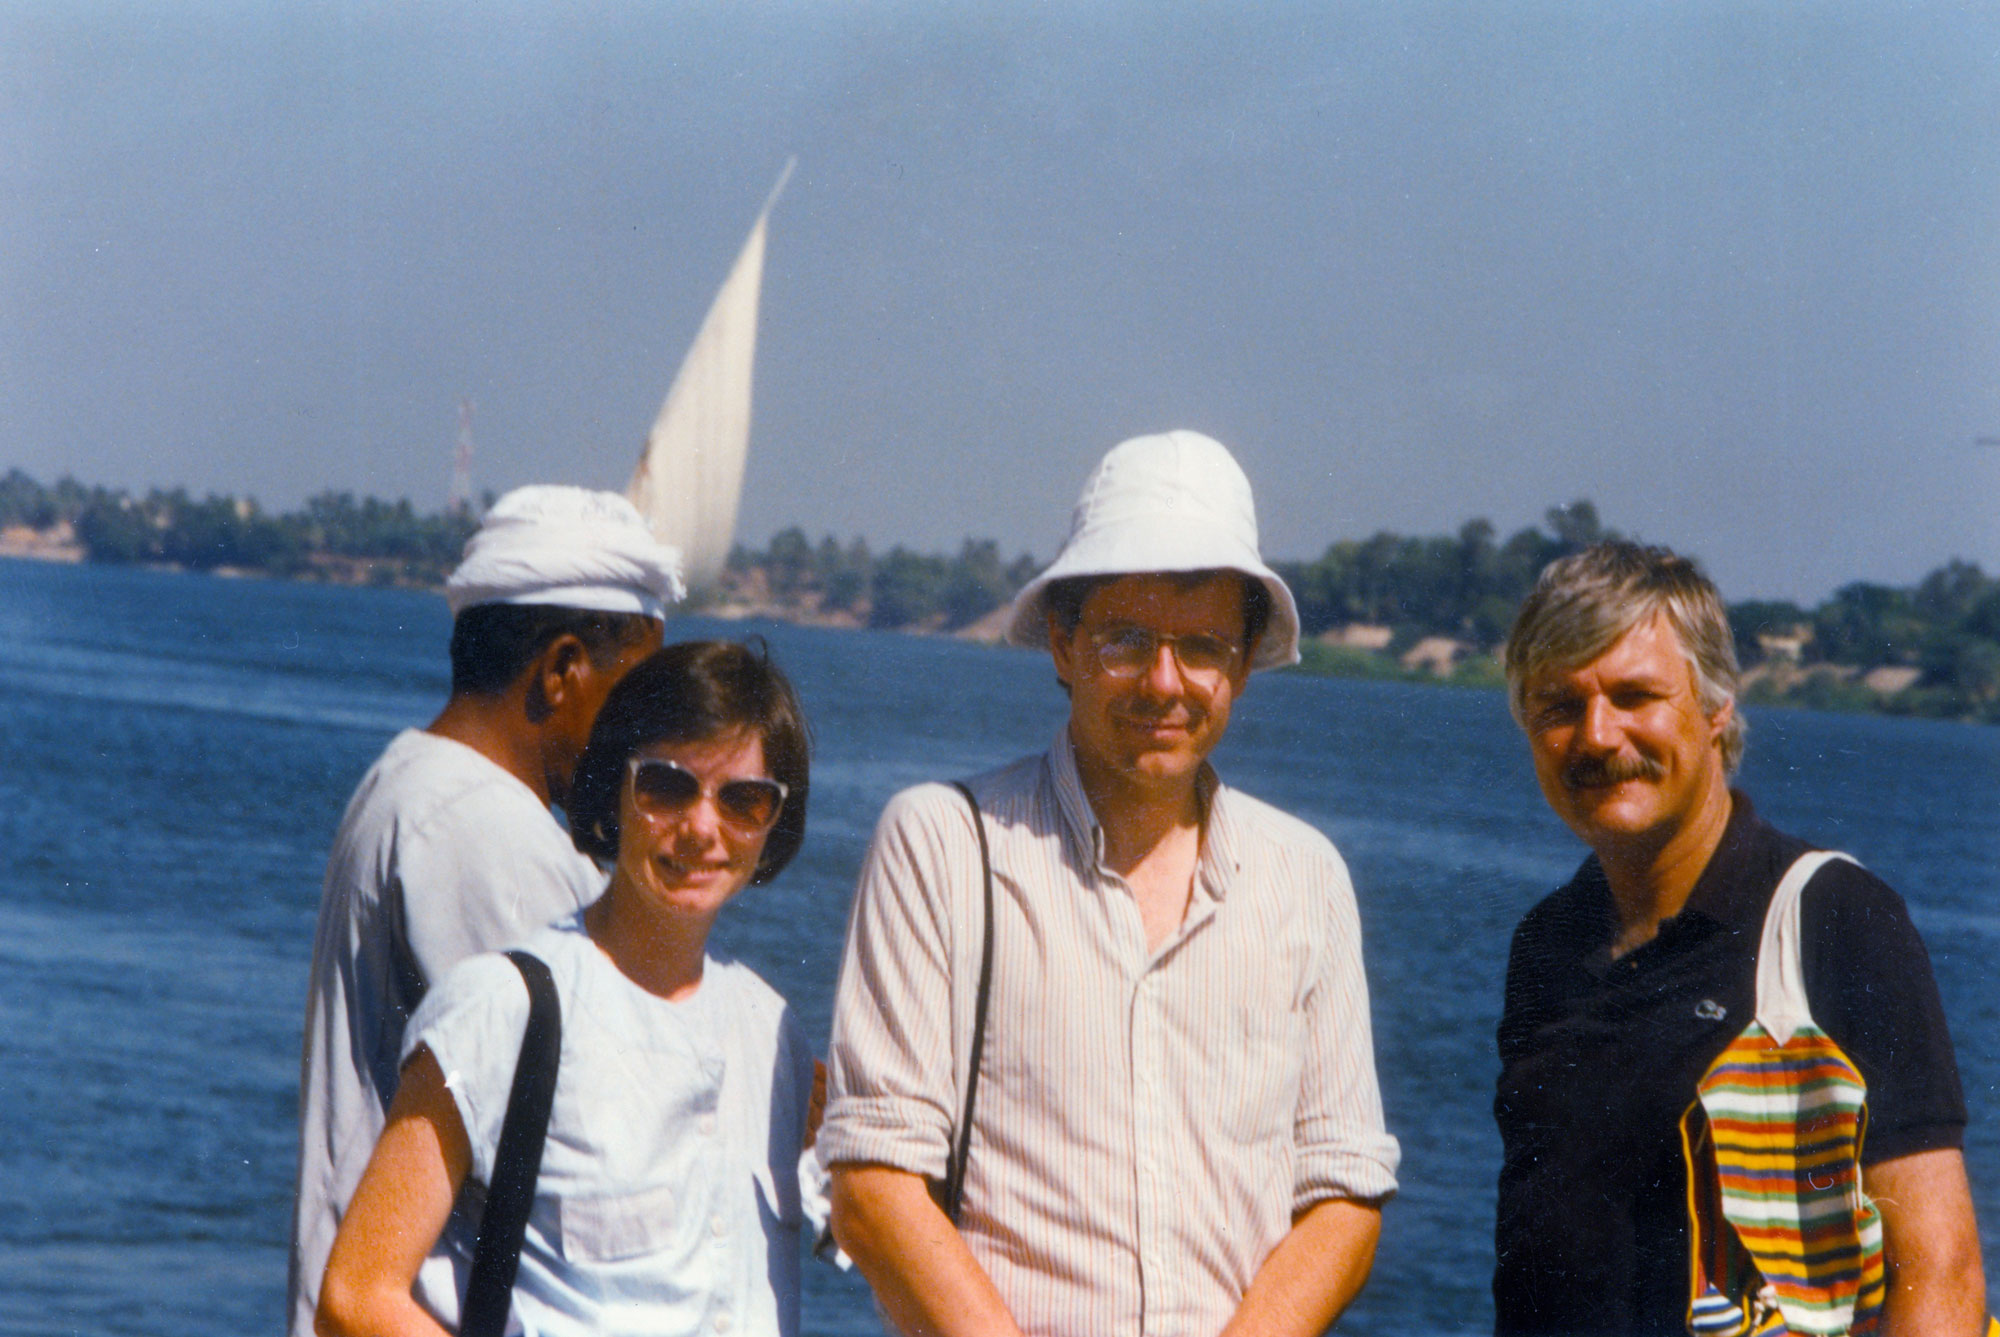 Reville and colleagues standing in sun in front of water